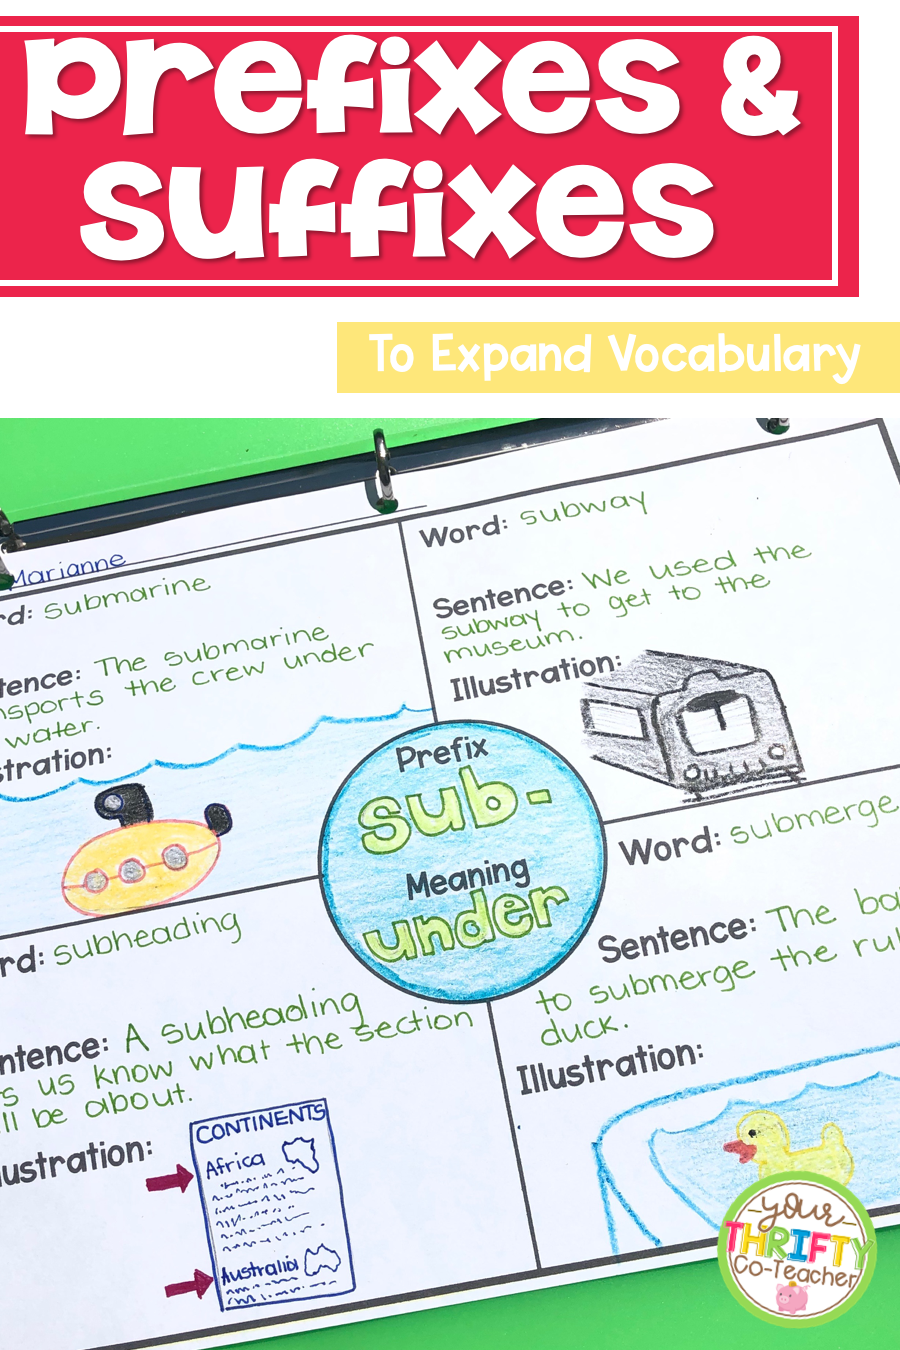 Prefixes and Suffixes Activities to Expand Vocabulary - Your Thrifty  Co-Teacher [ 1350 x 900 Pixel ]